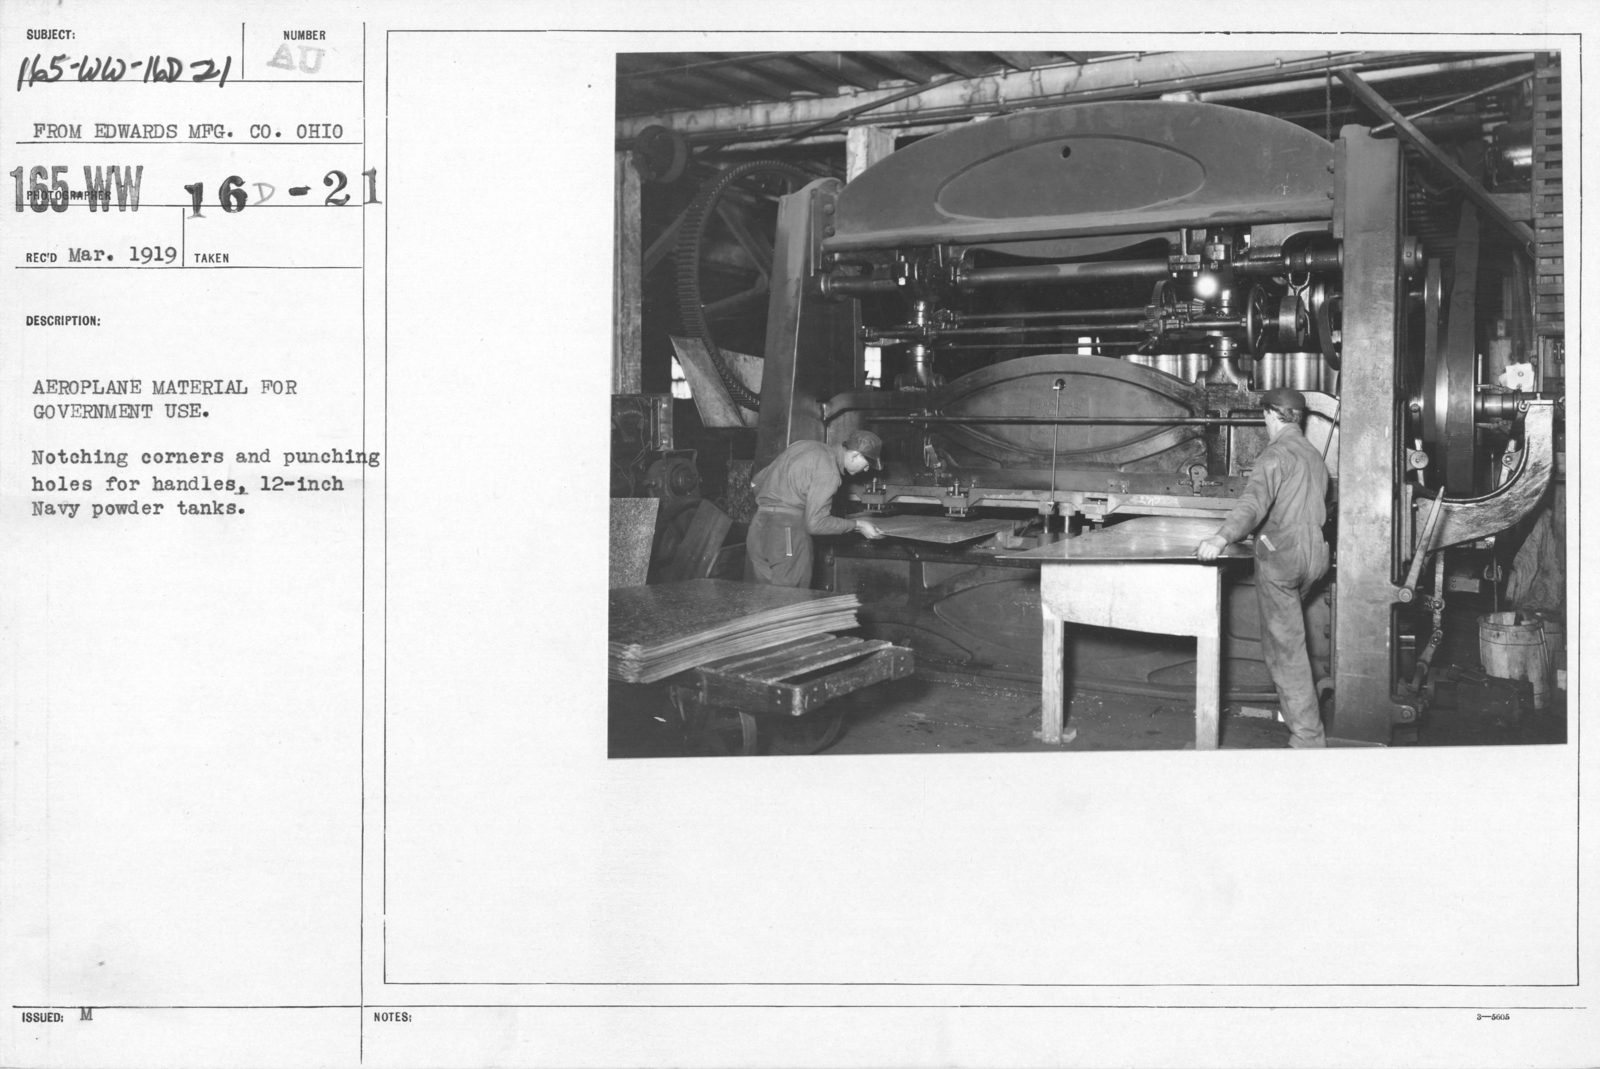 Airplanes - Parts - Aeroplane material for government use. Notching corners and punching holes for handles, 12-inch Navy powder tanks. From Edwards MFG. CO. Ohio